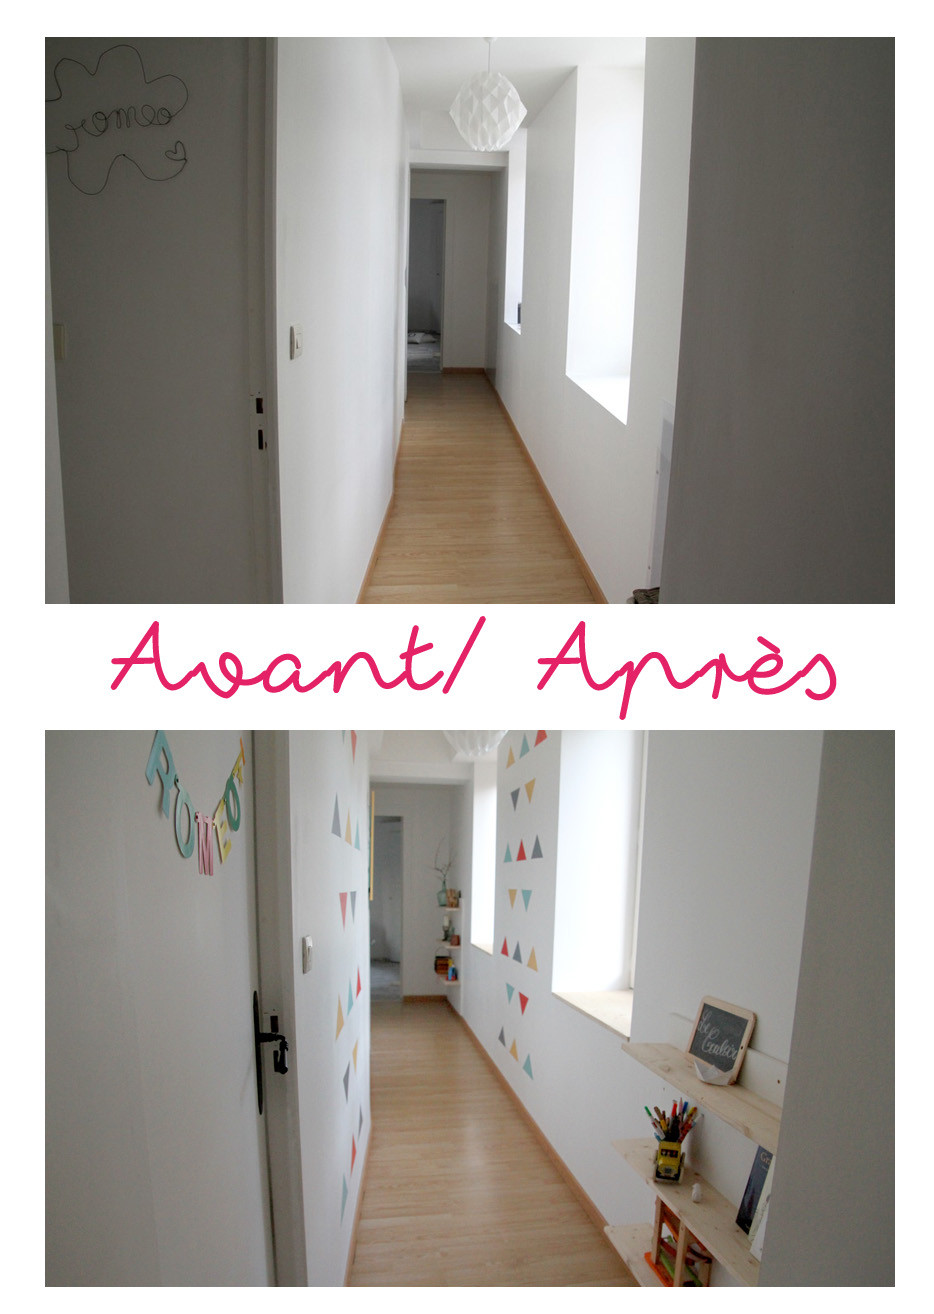 Le couloir avant apr s for Idee deco chambre sans fenetre